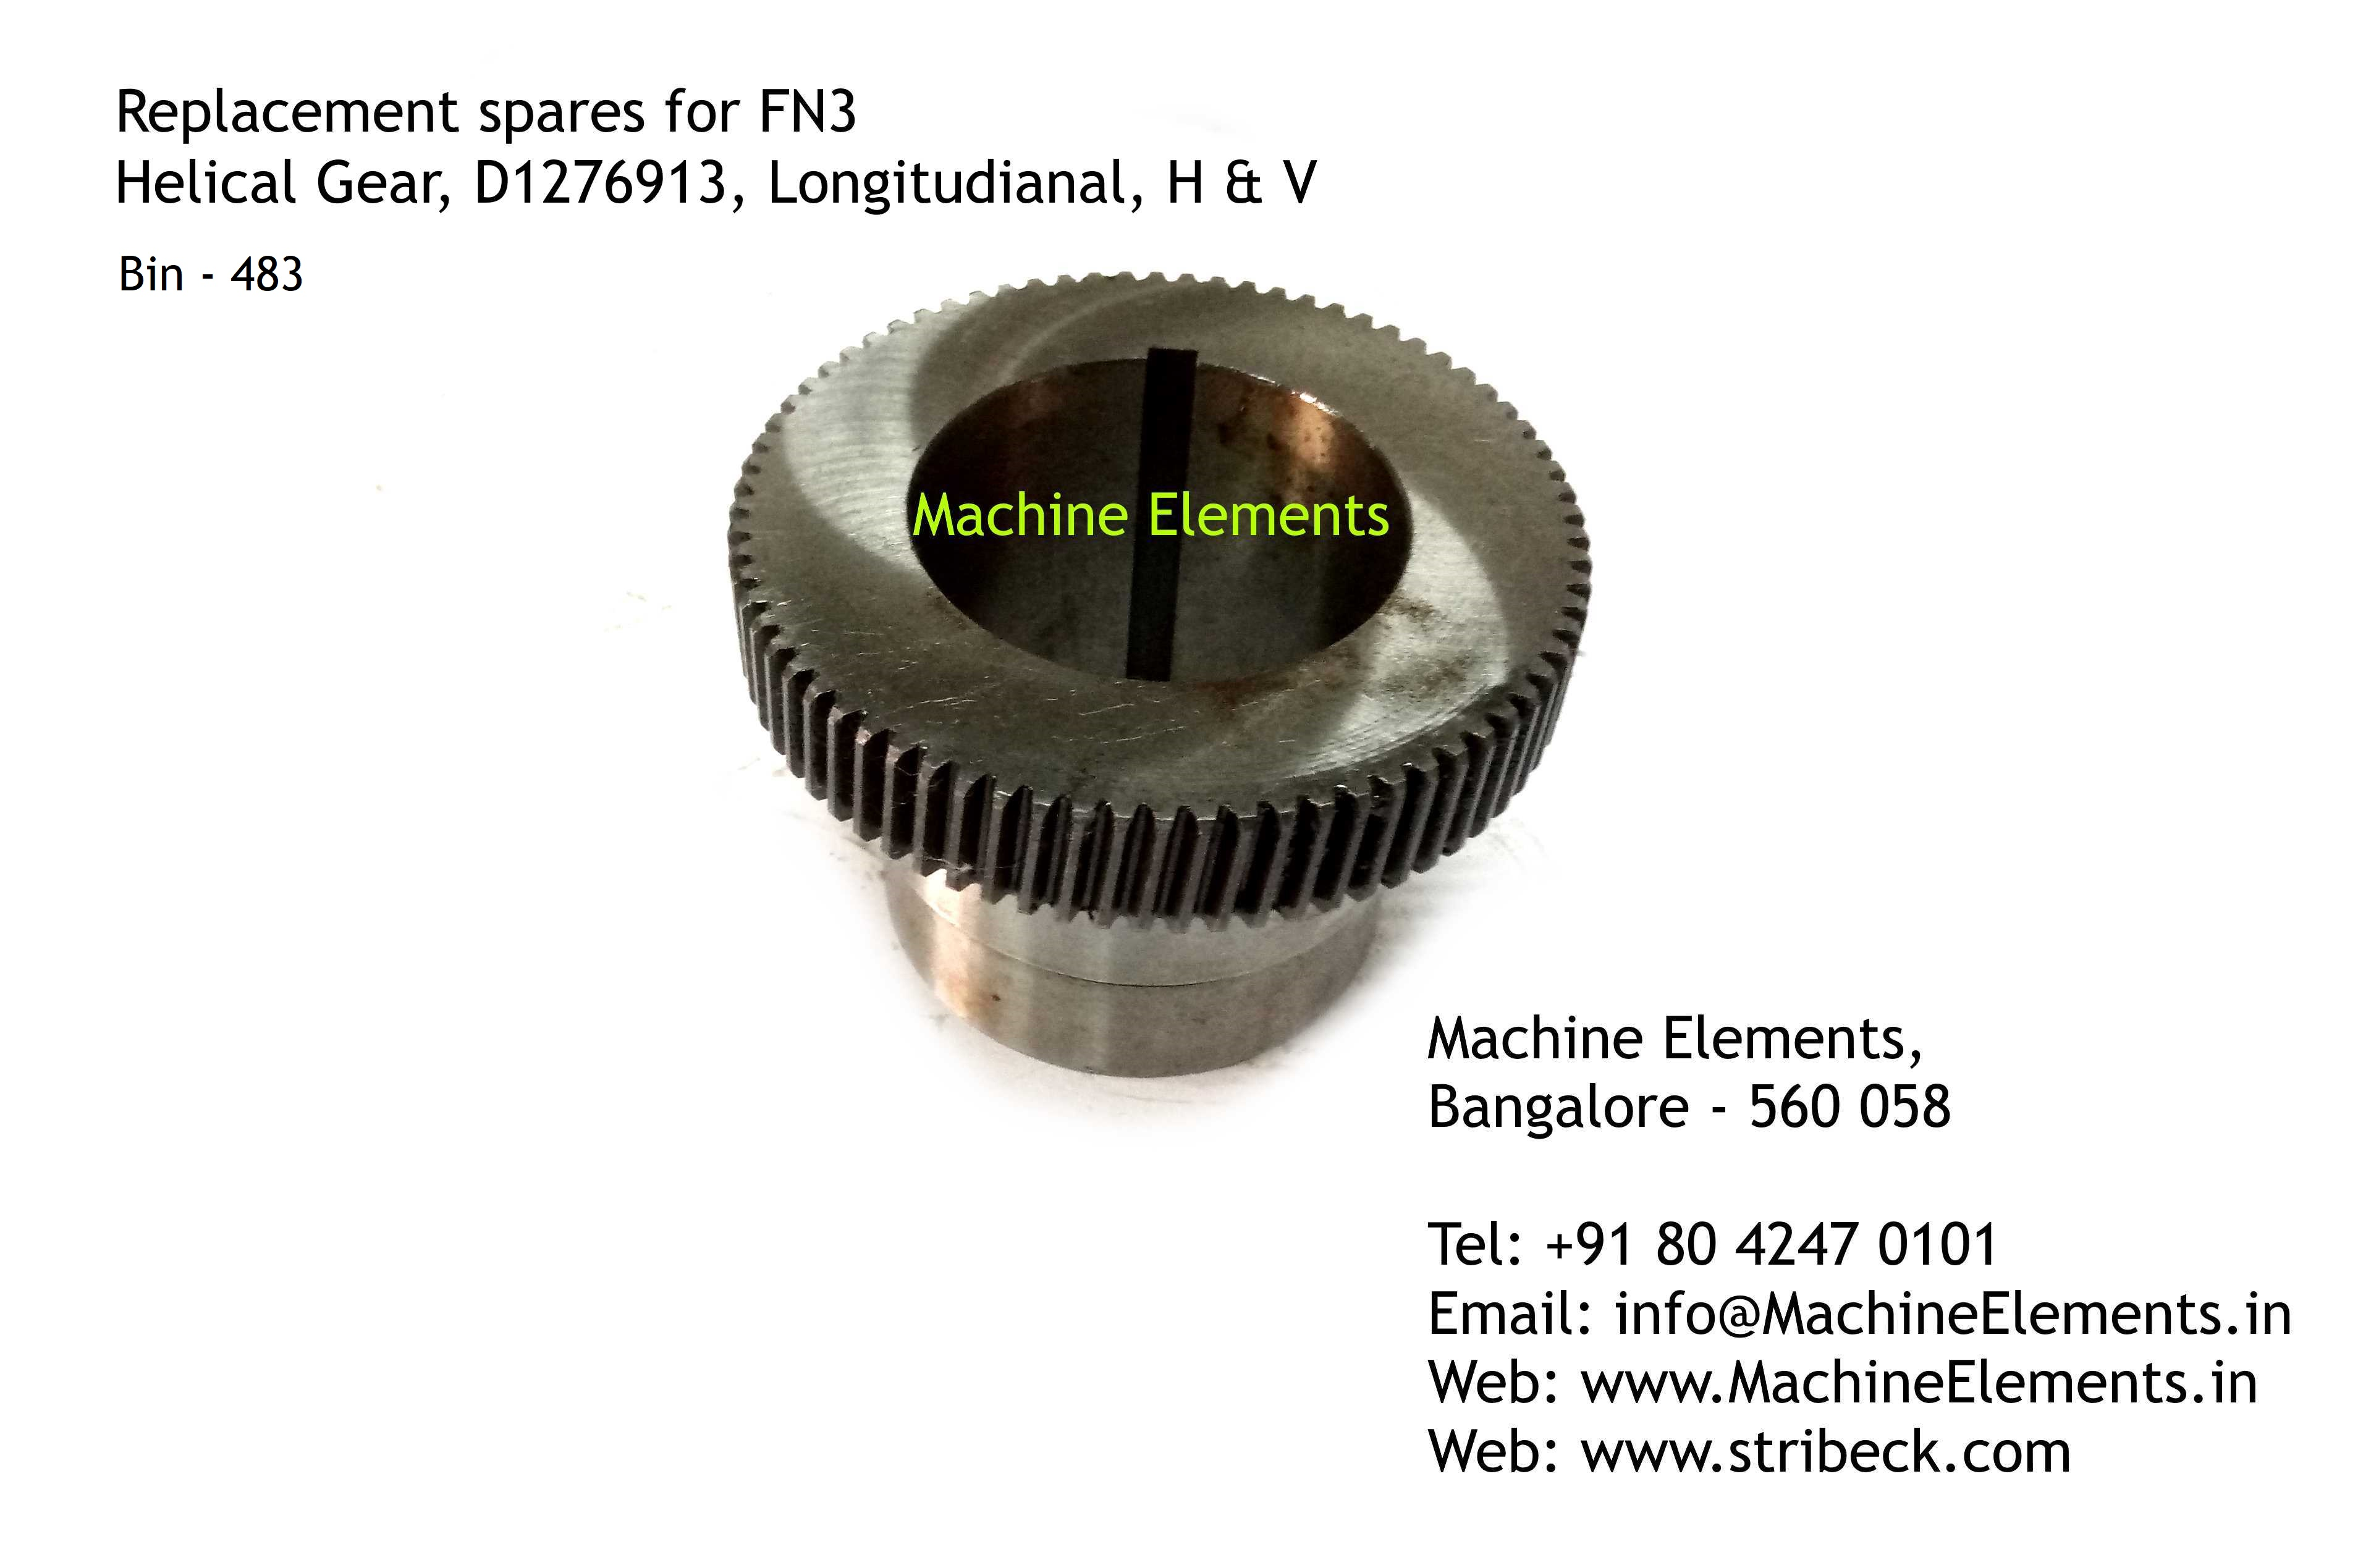 Helical Gear, D1276913, Longitudinal, H